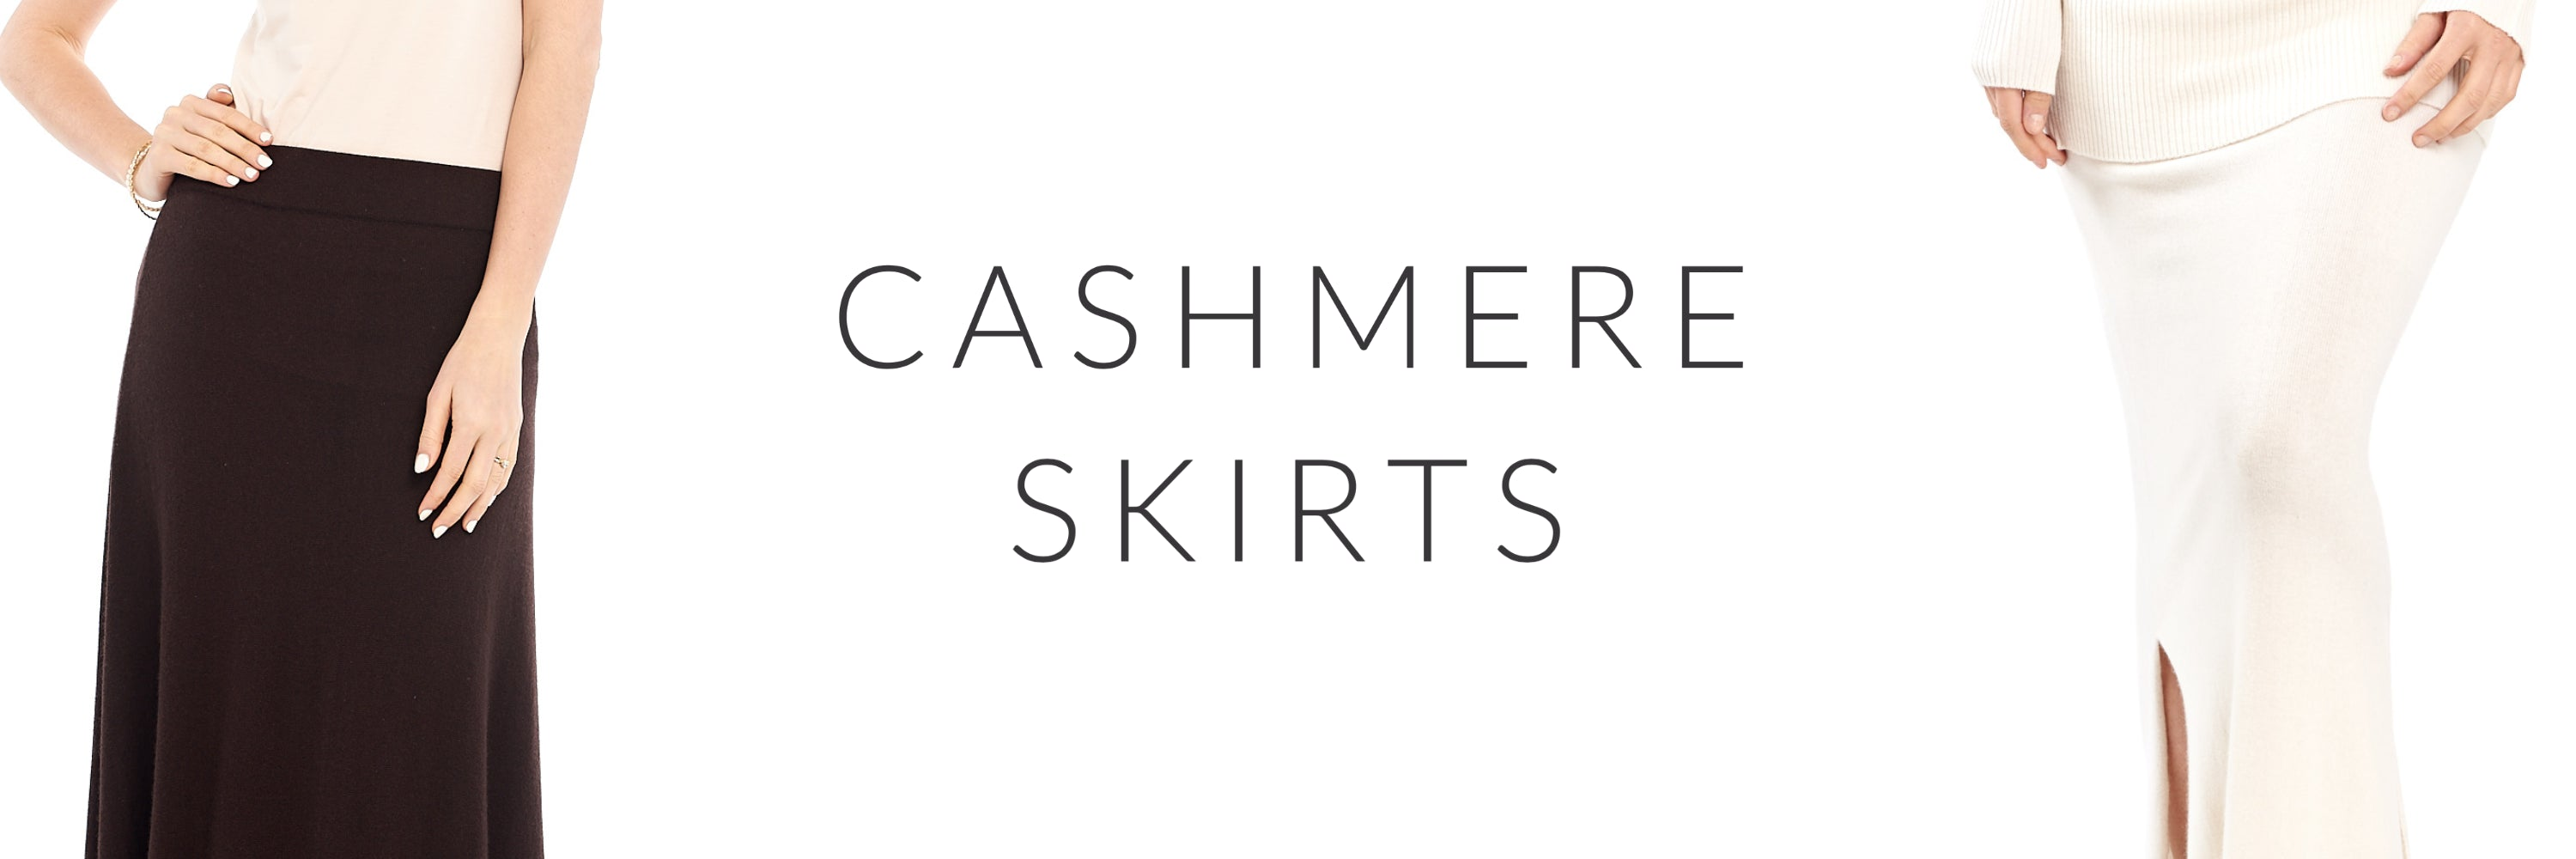 Cashmere Skirts